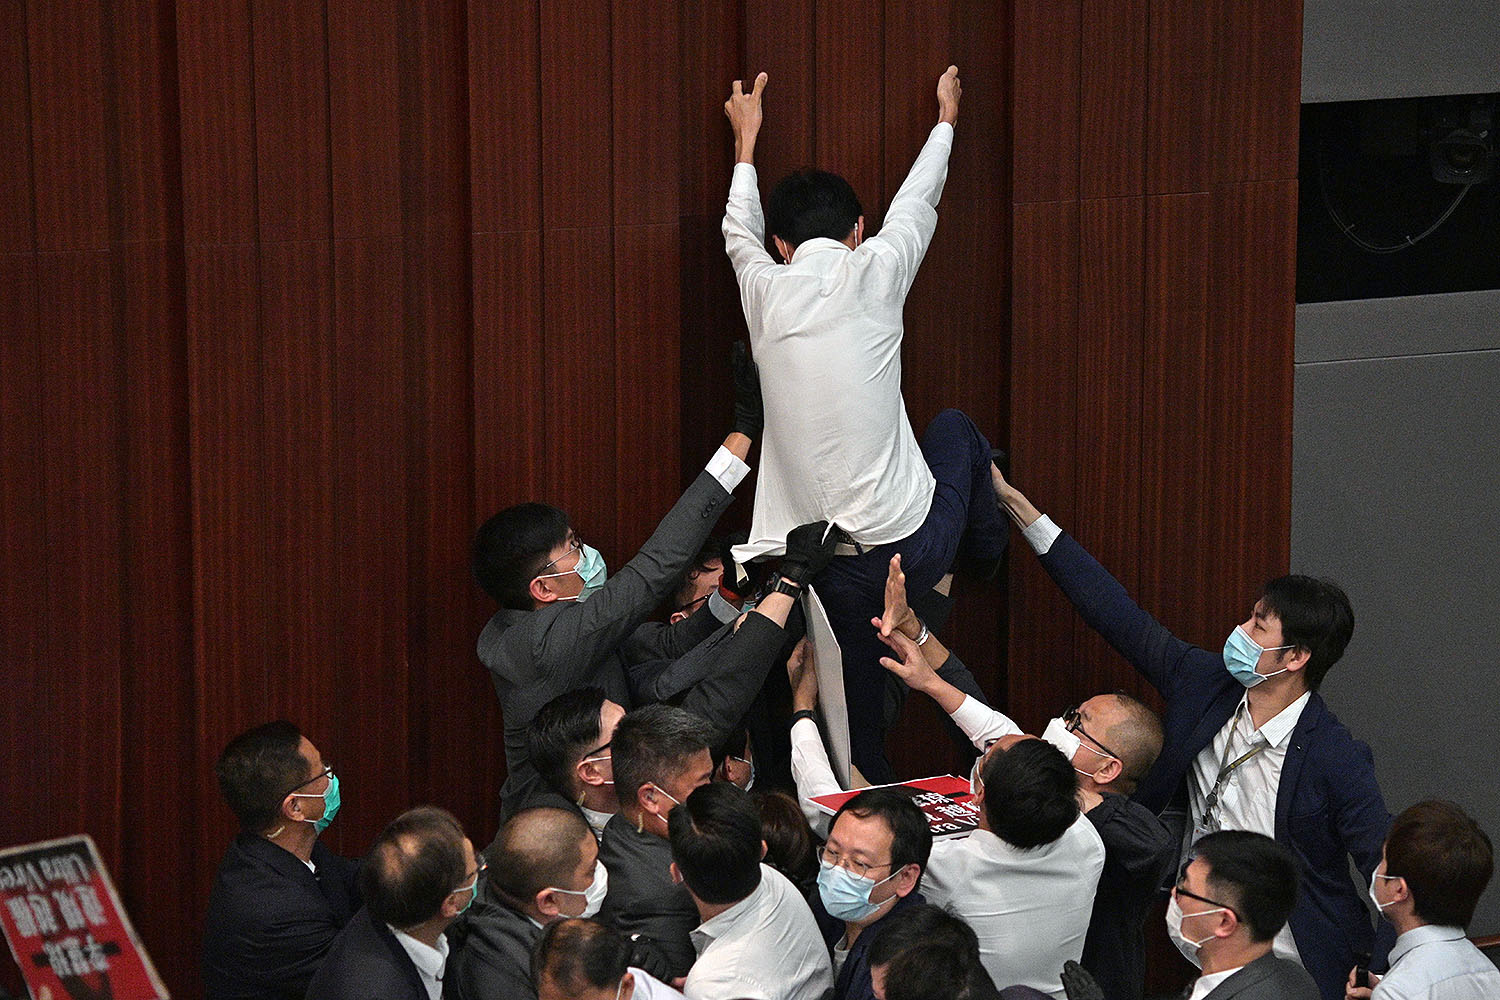 Pro-democracy lawmaker Eddie Chu Hoi-dick attempts to climb a wall as security members try to restrain him from protesting after pro-Beijing lawmaker Starry Lee (not seen) inserted herself as chair of a committee meeting at the Legislative Council in Hong Kong on May 8. ANTHONY WALLACE/AFP via Getty Images